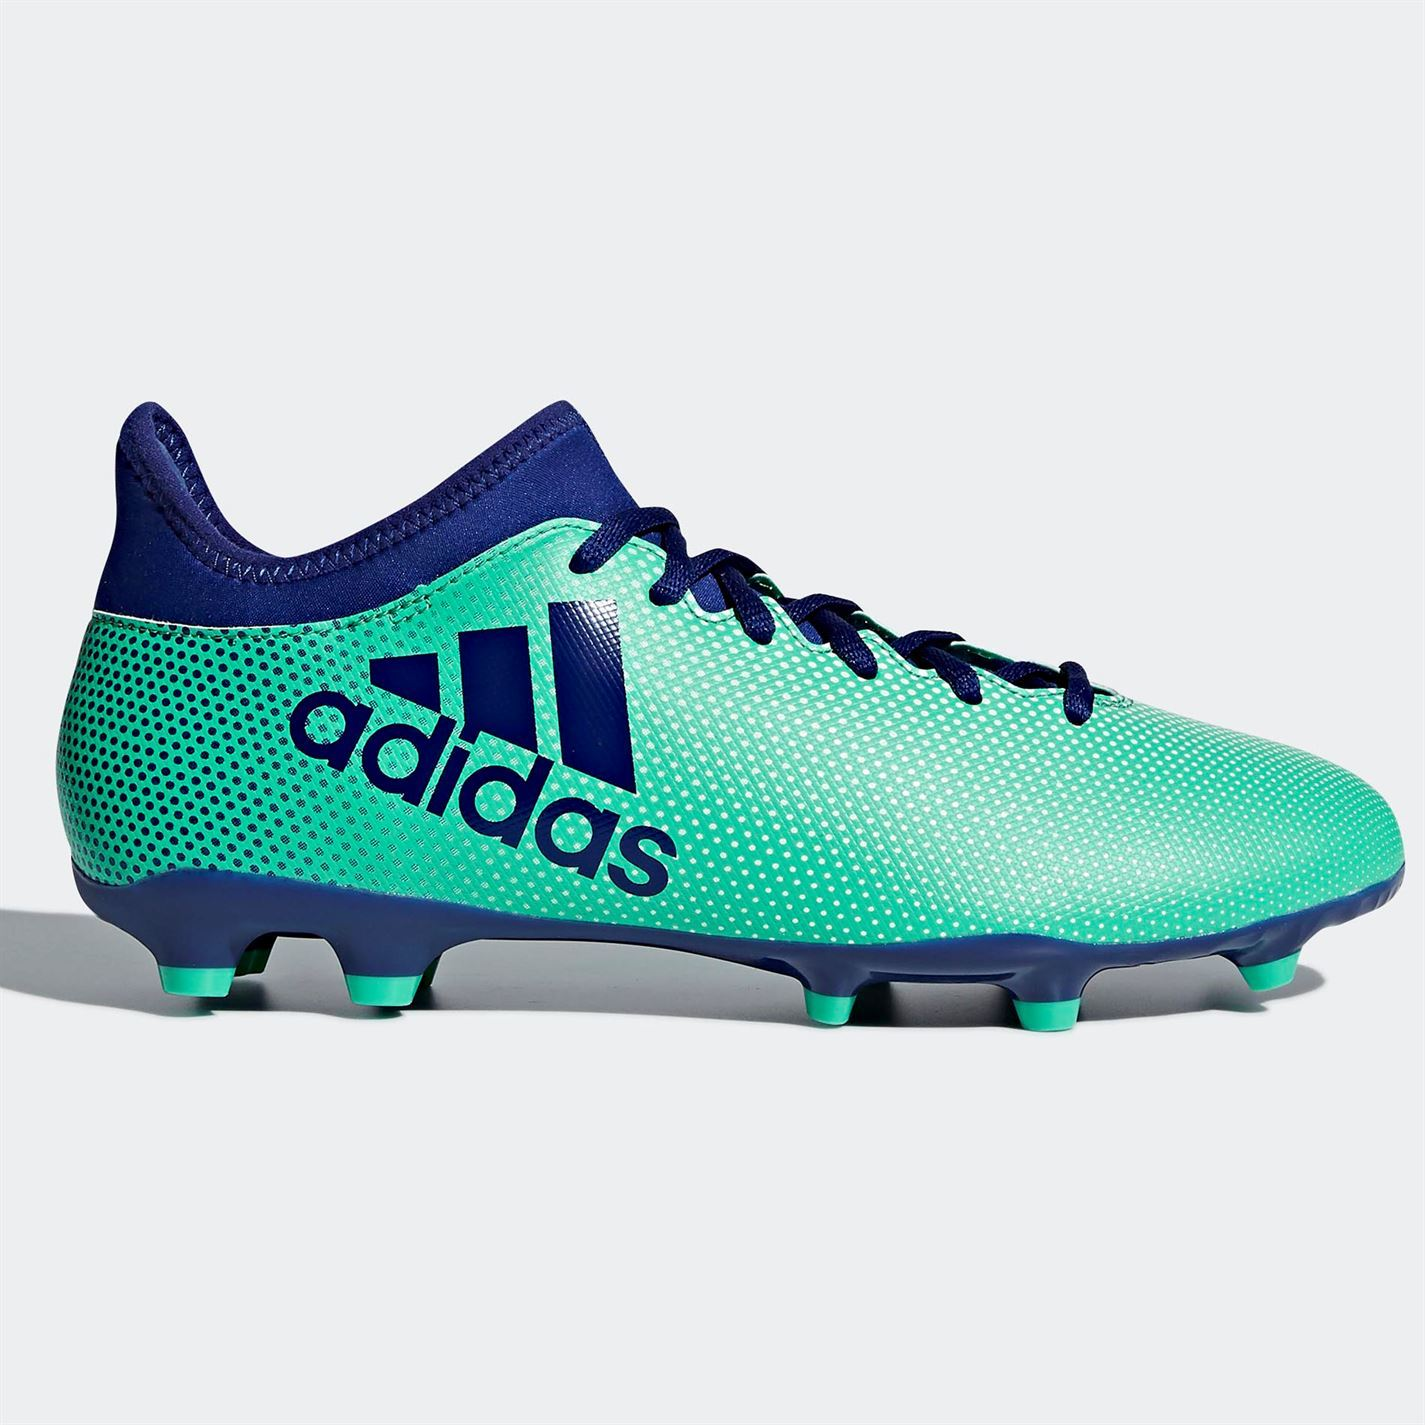 5931da12d69c8f ... adidas X 17.3 FG Firm Ground Football Boots Mens Green Ink Soccer Shoes  Cleats ...